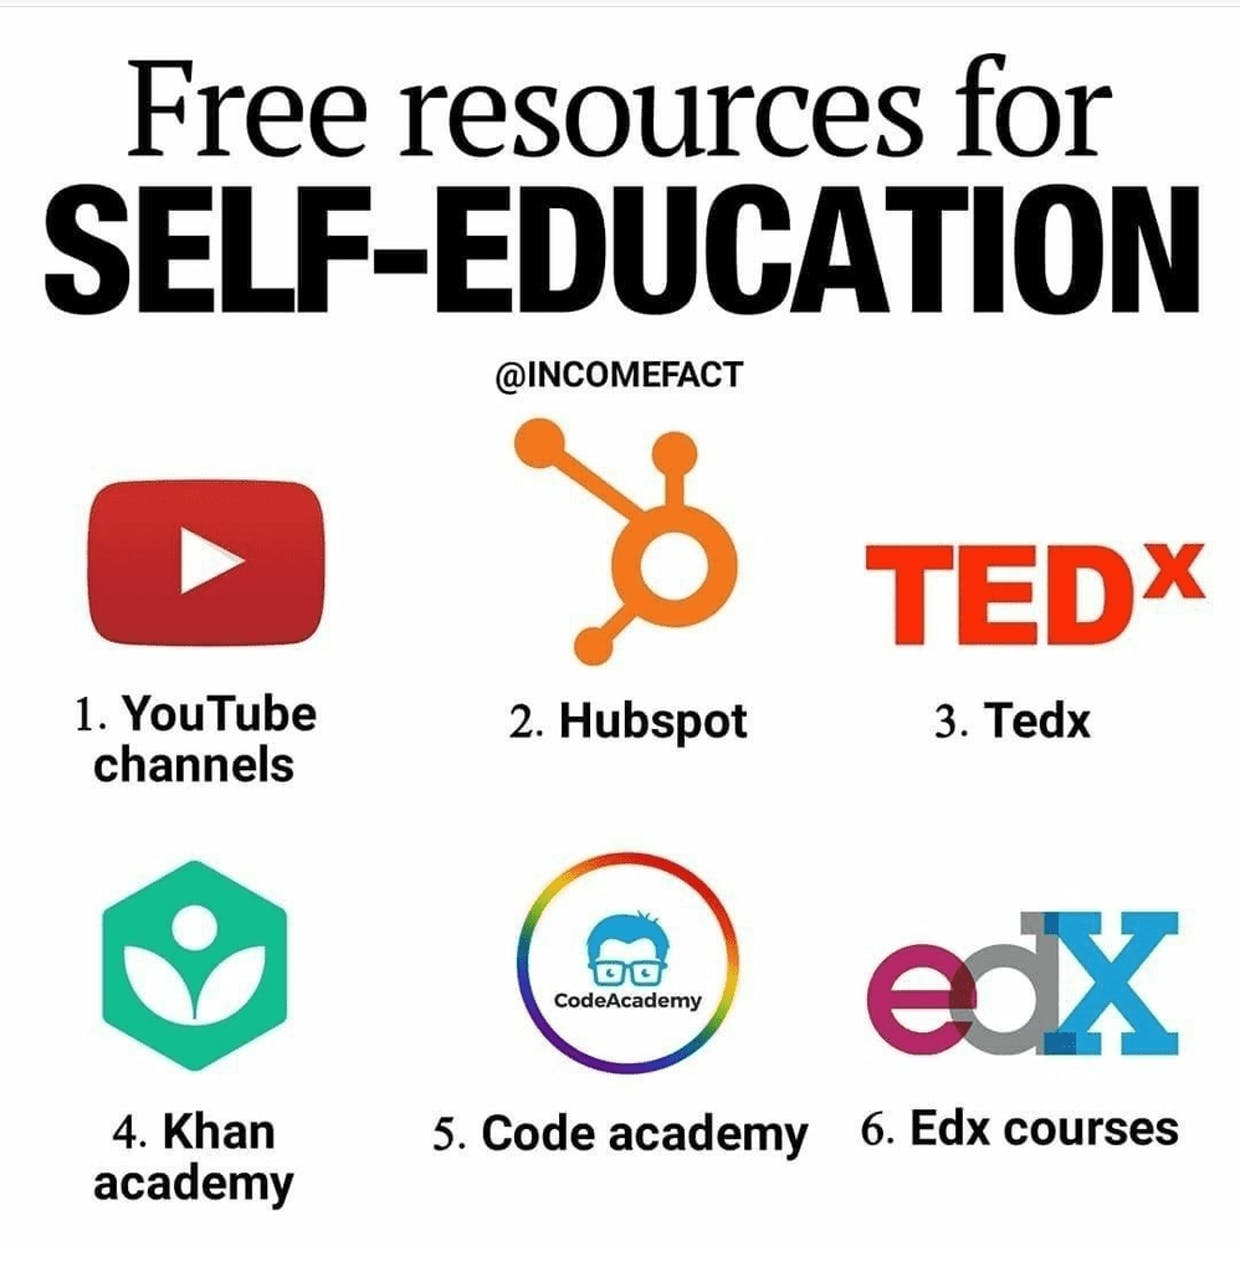 Some self learning sources